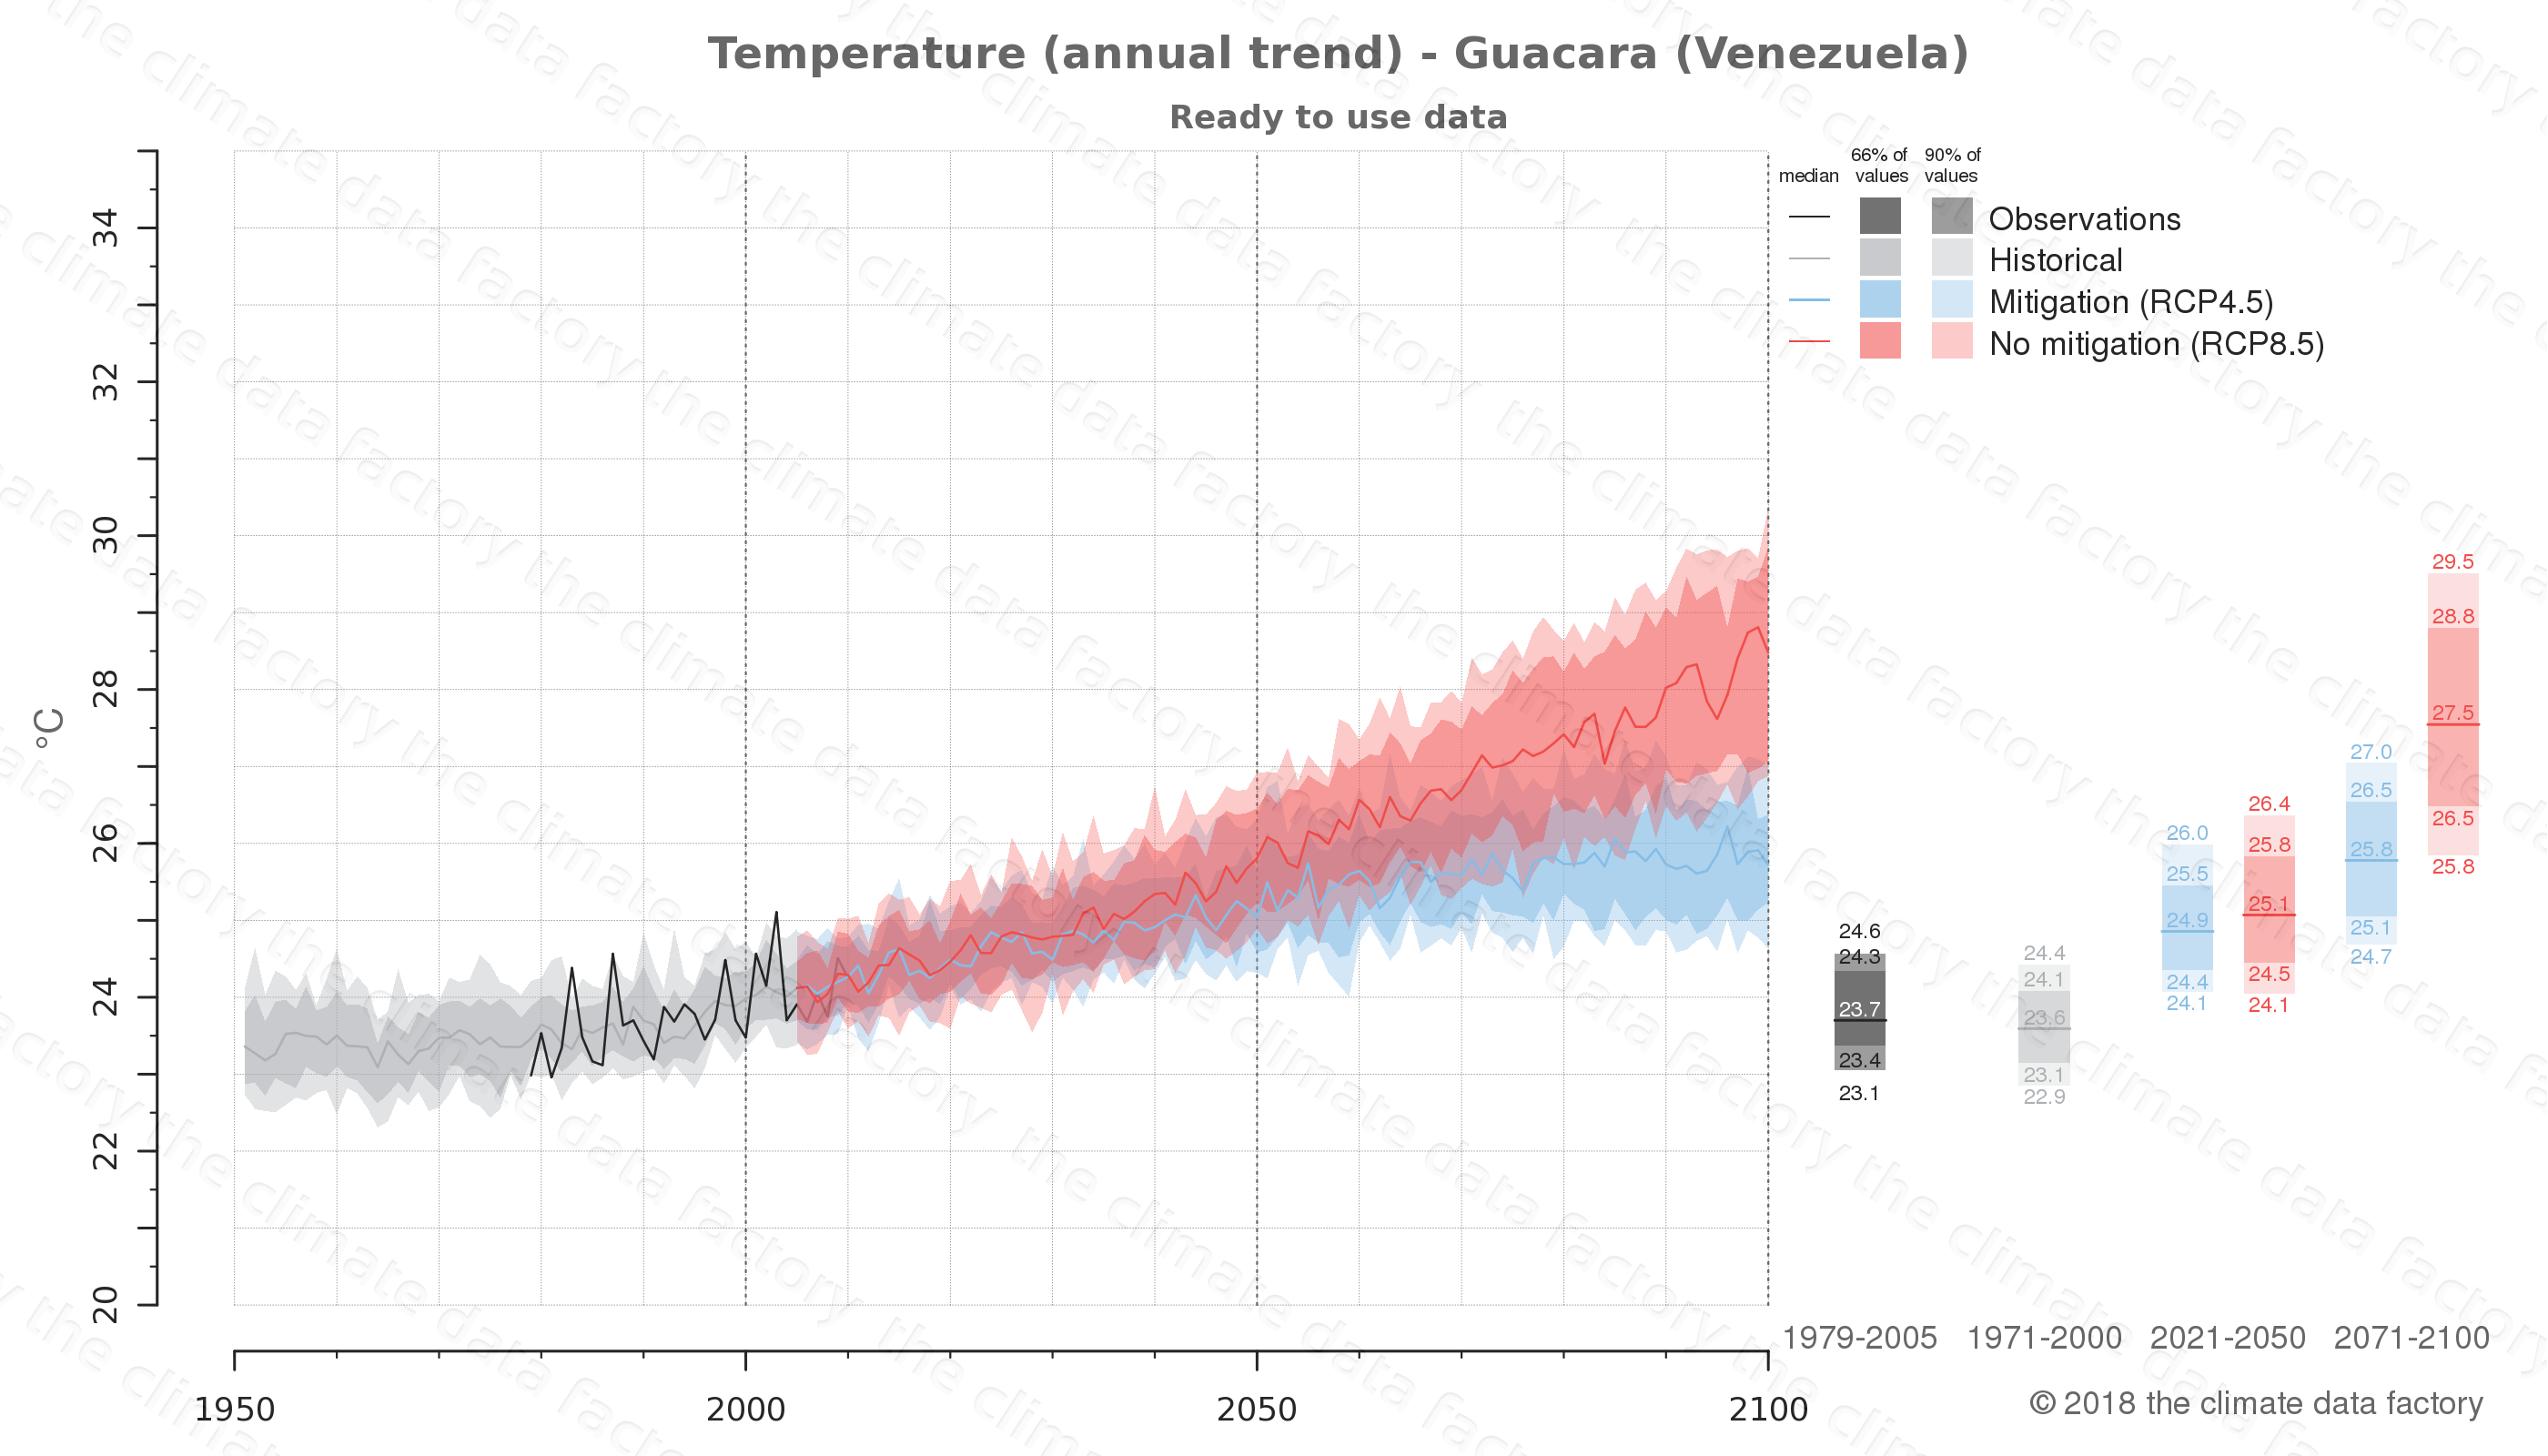 climate change data policy adaptation climate graph city data temperature guacara venezuela